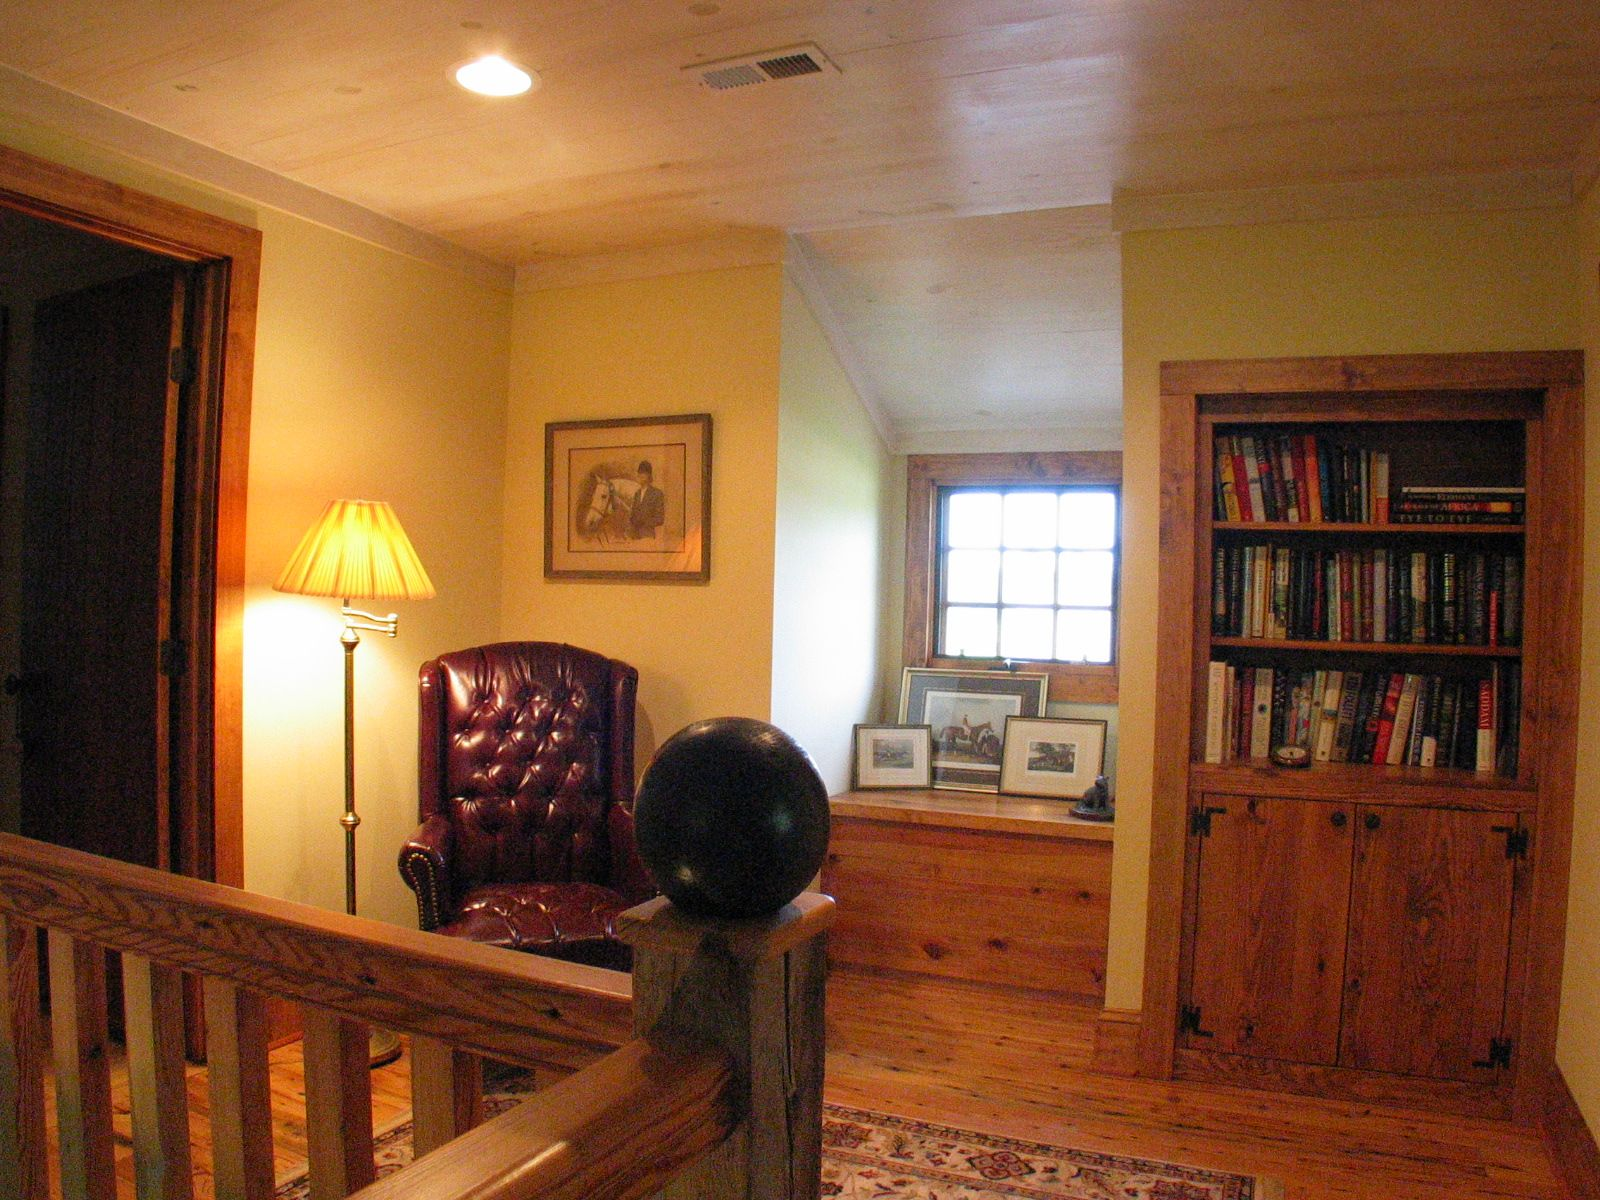 Upstairs Foyer Ideas : Quaint reading spot in the upstairs foyer home ideas